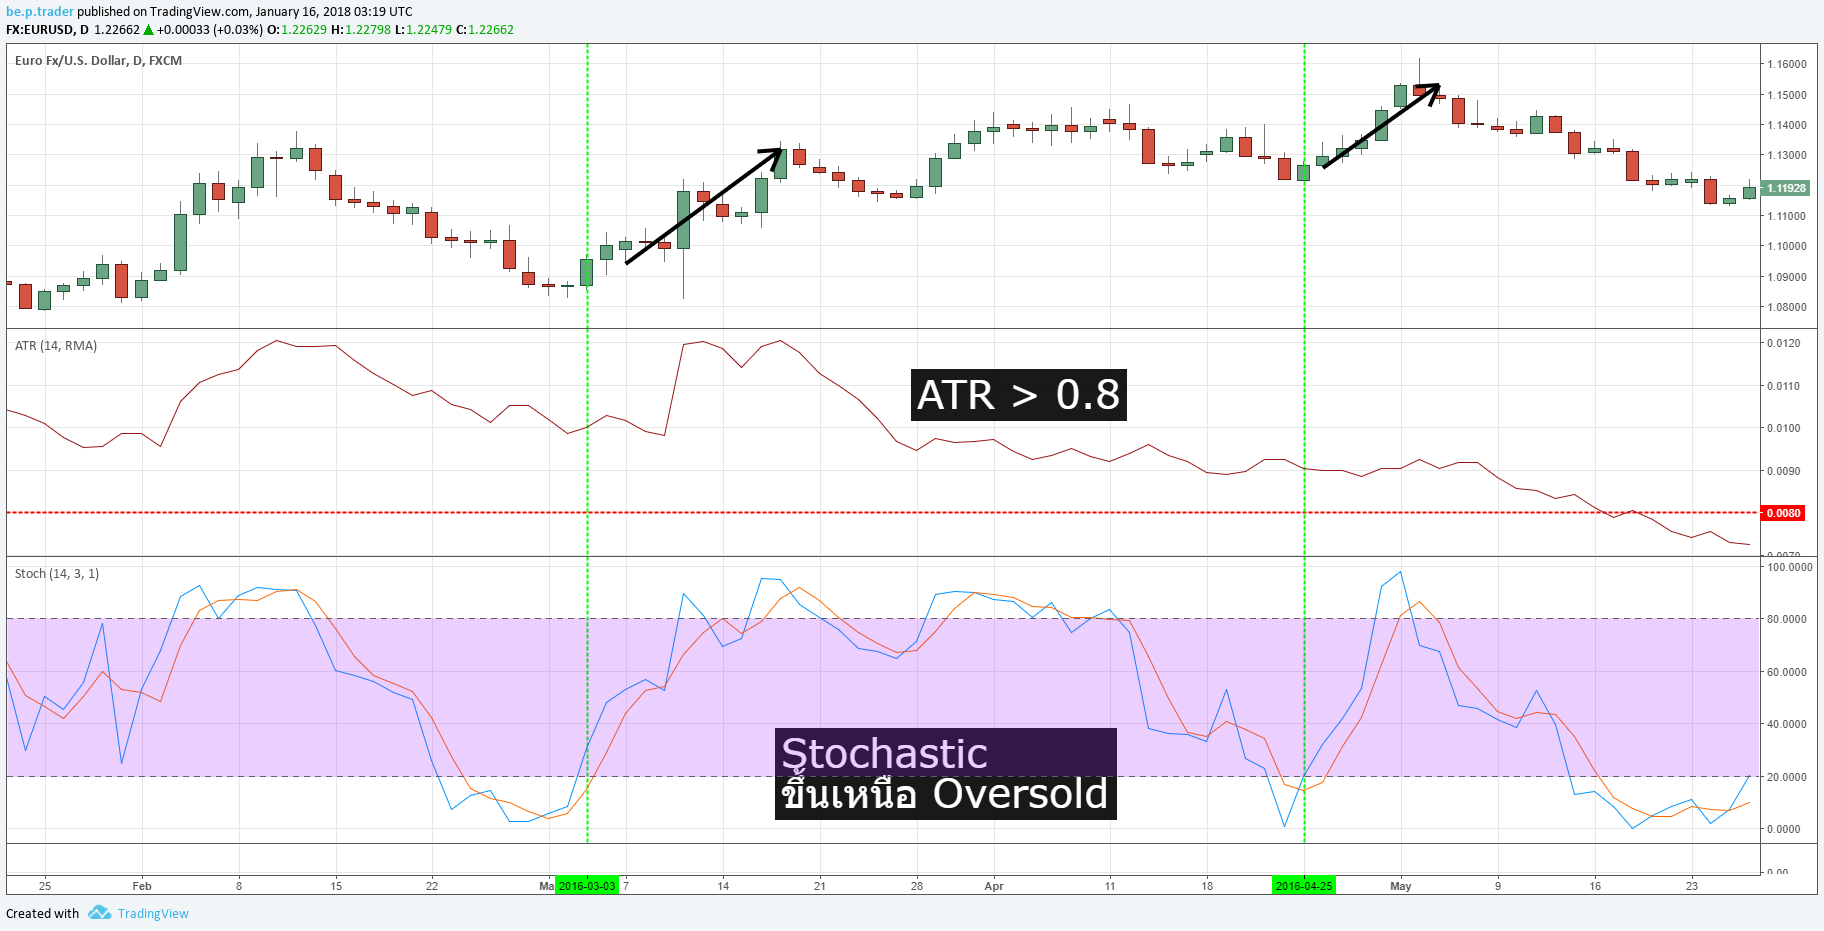 Stochastic with ATR Strategy